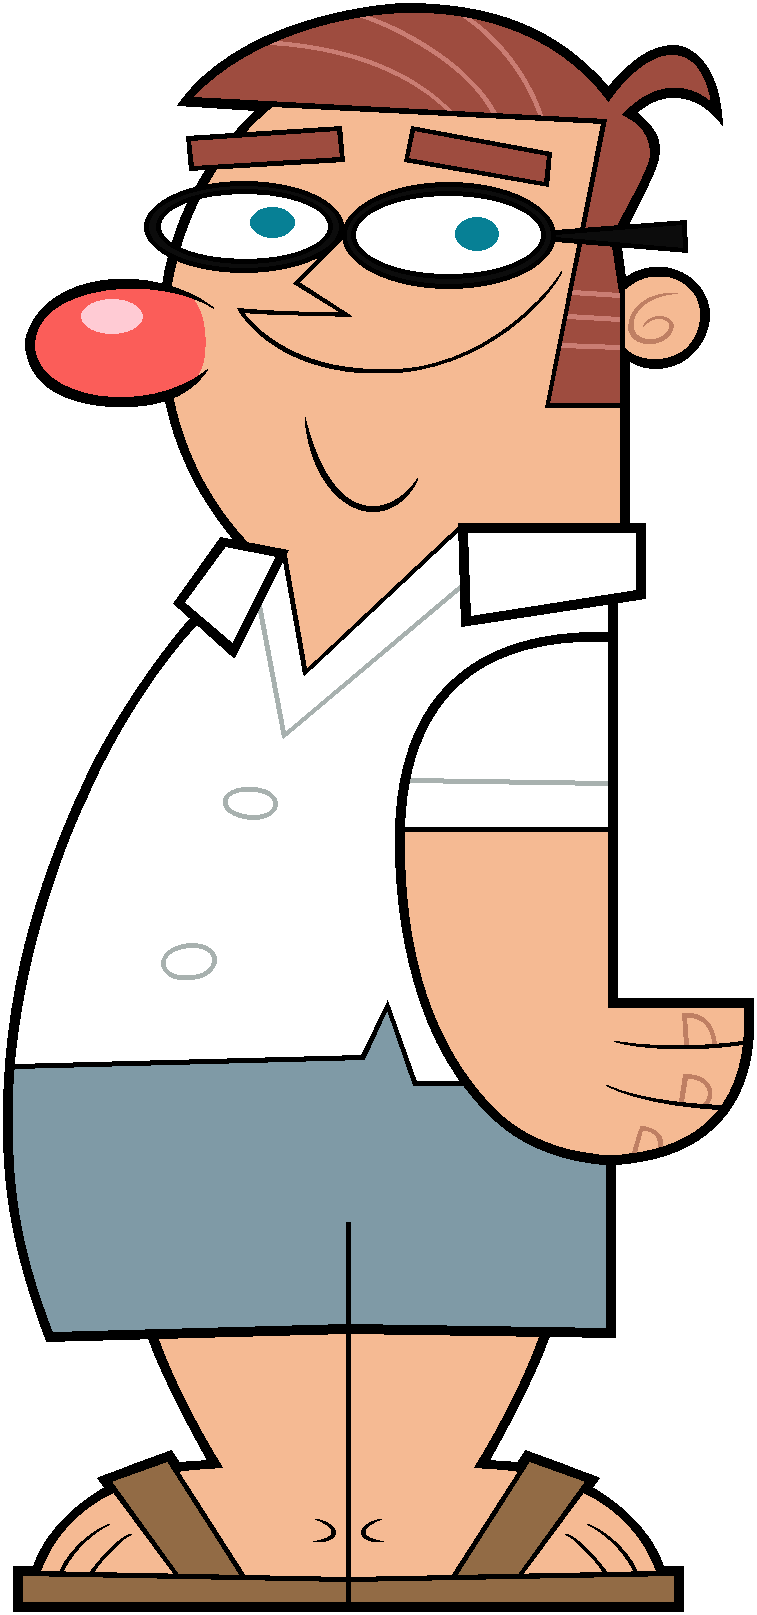 Mr. Boyle (The All New Fairly OddParents!)